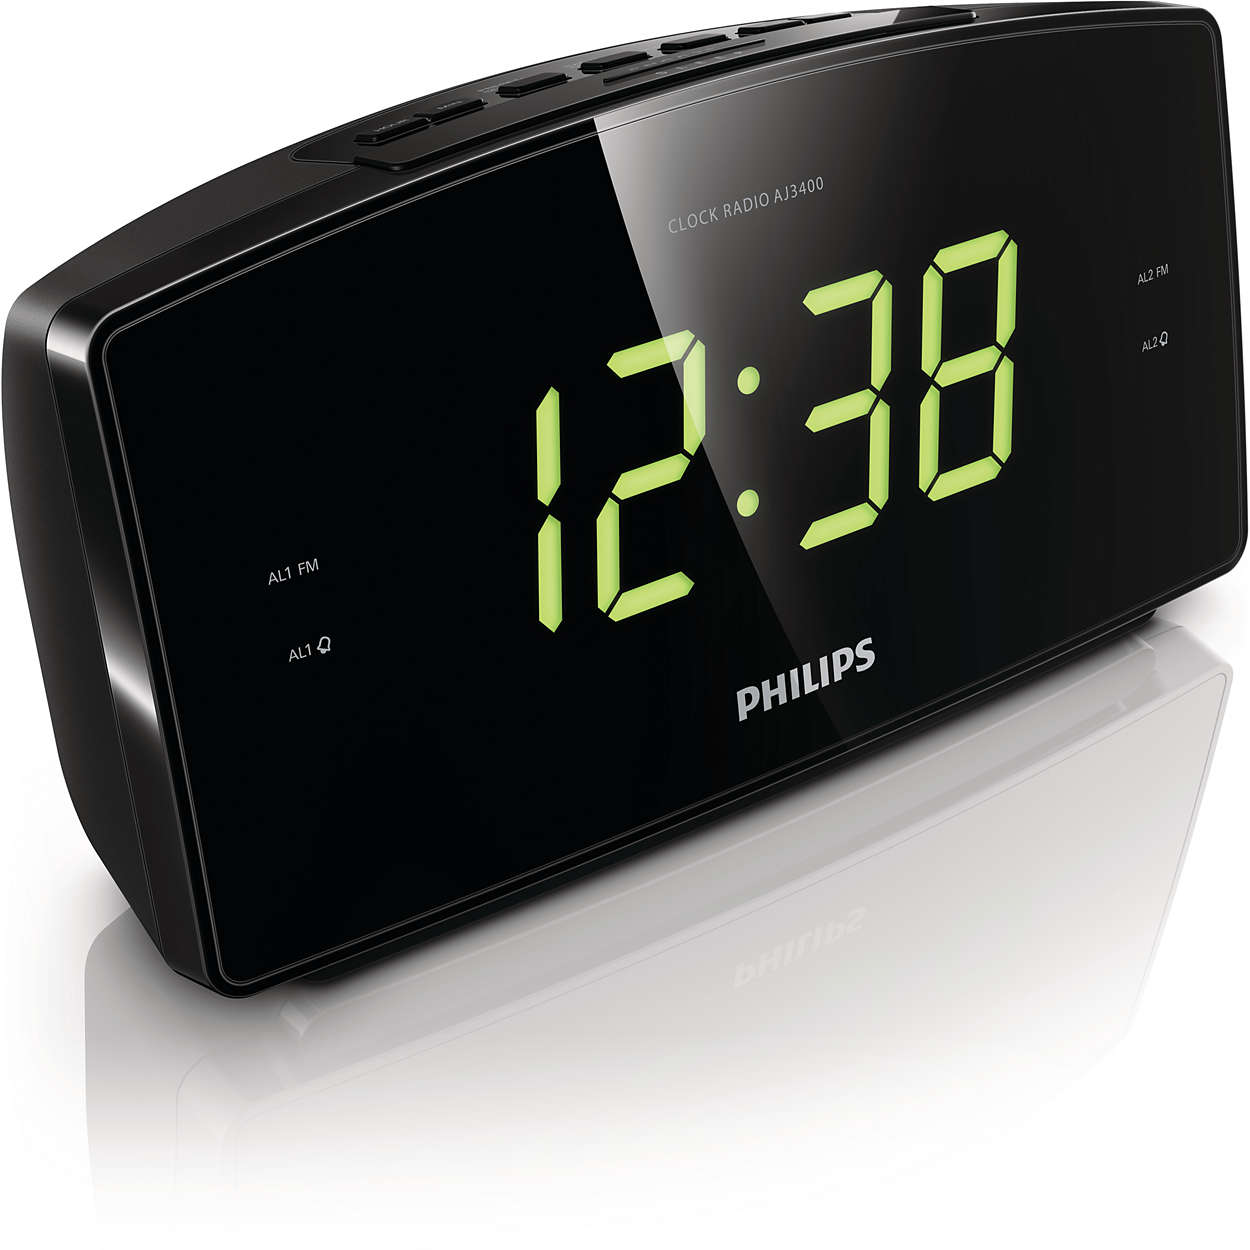 Clock Radio Aj3400 12 Philips